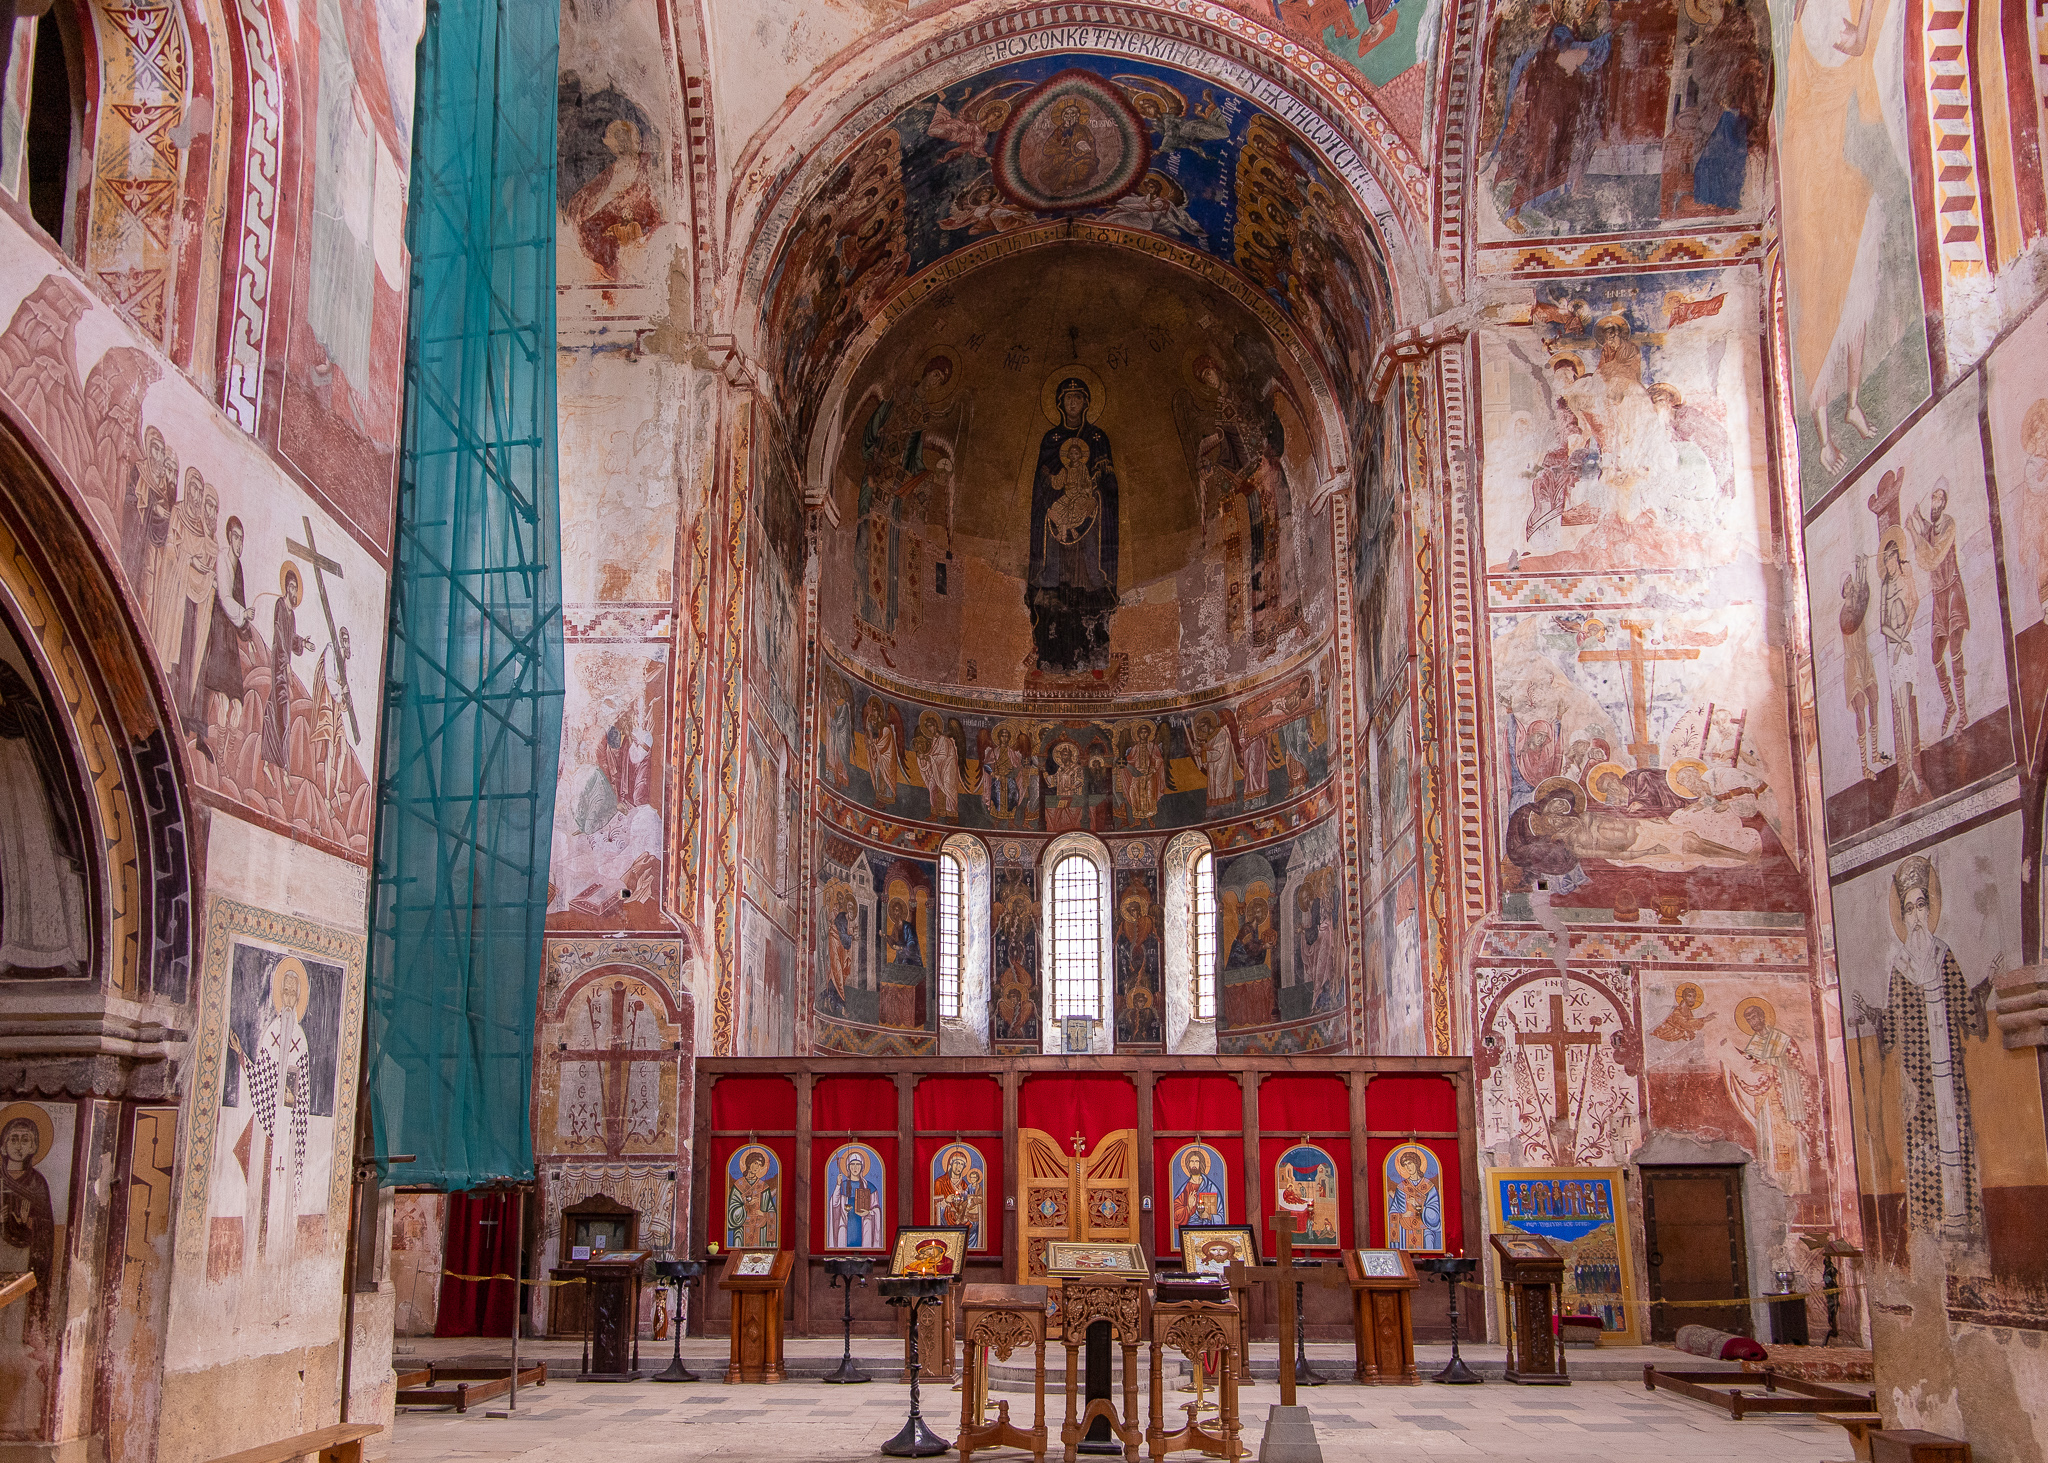 Top notch frescoes in the main apse